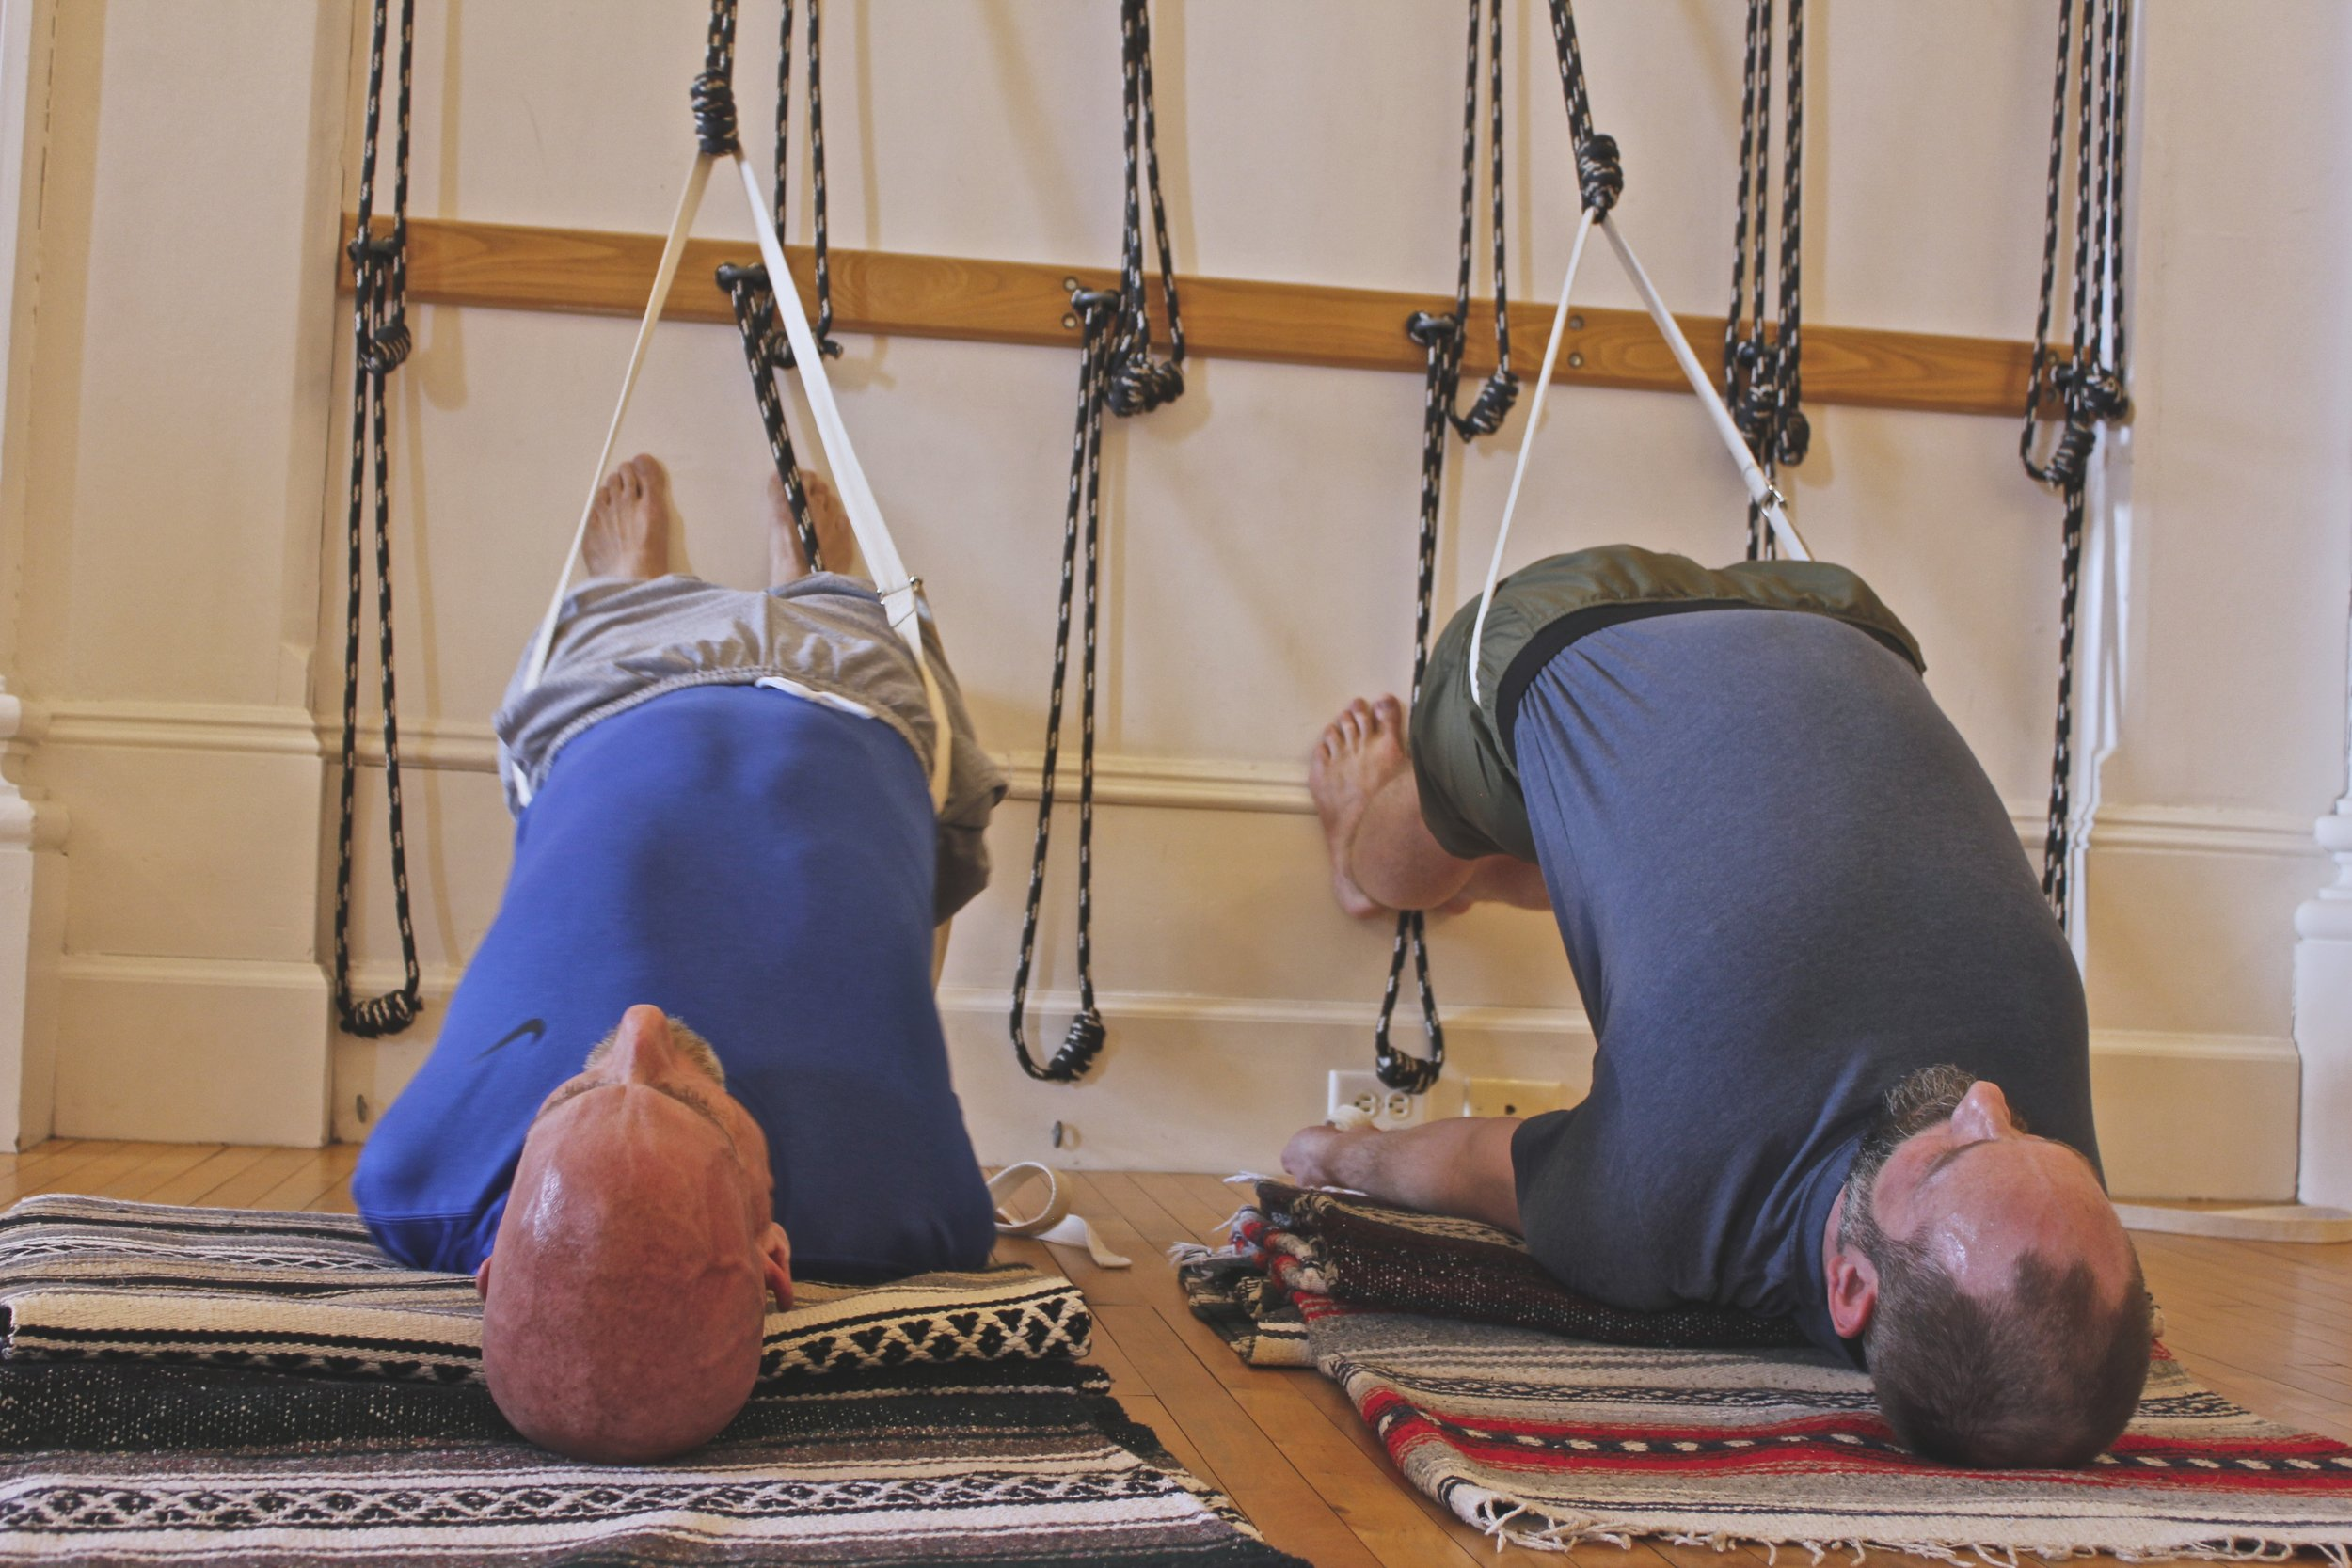 New Sunday Yoga Ropes Class 10:00 - 11:30 AM - Darrin Vander Plas will lead a weekly ropes class that will create heat, opening, and release.